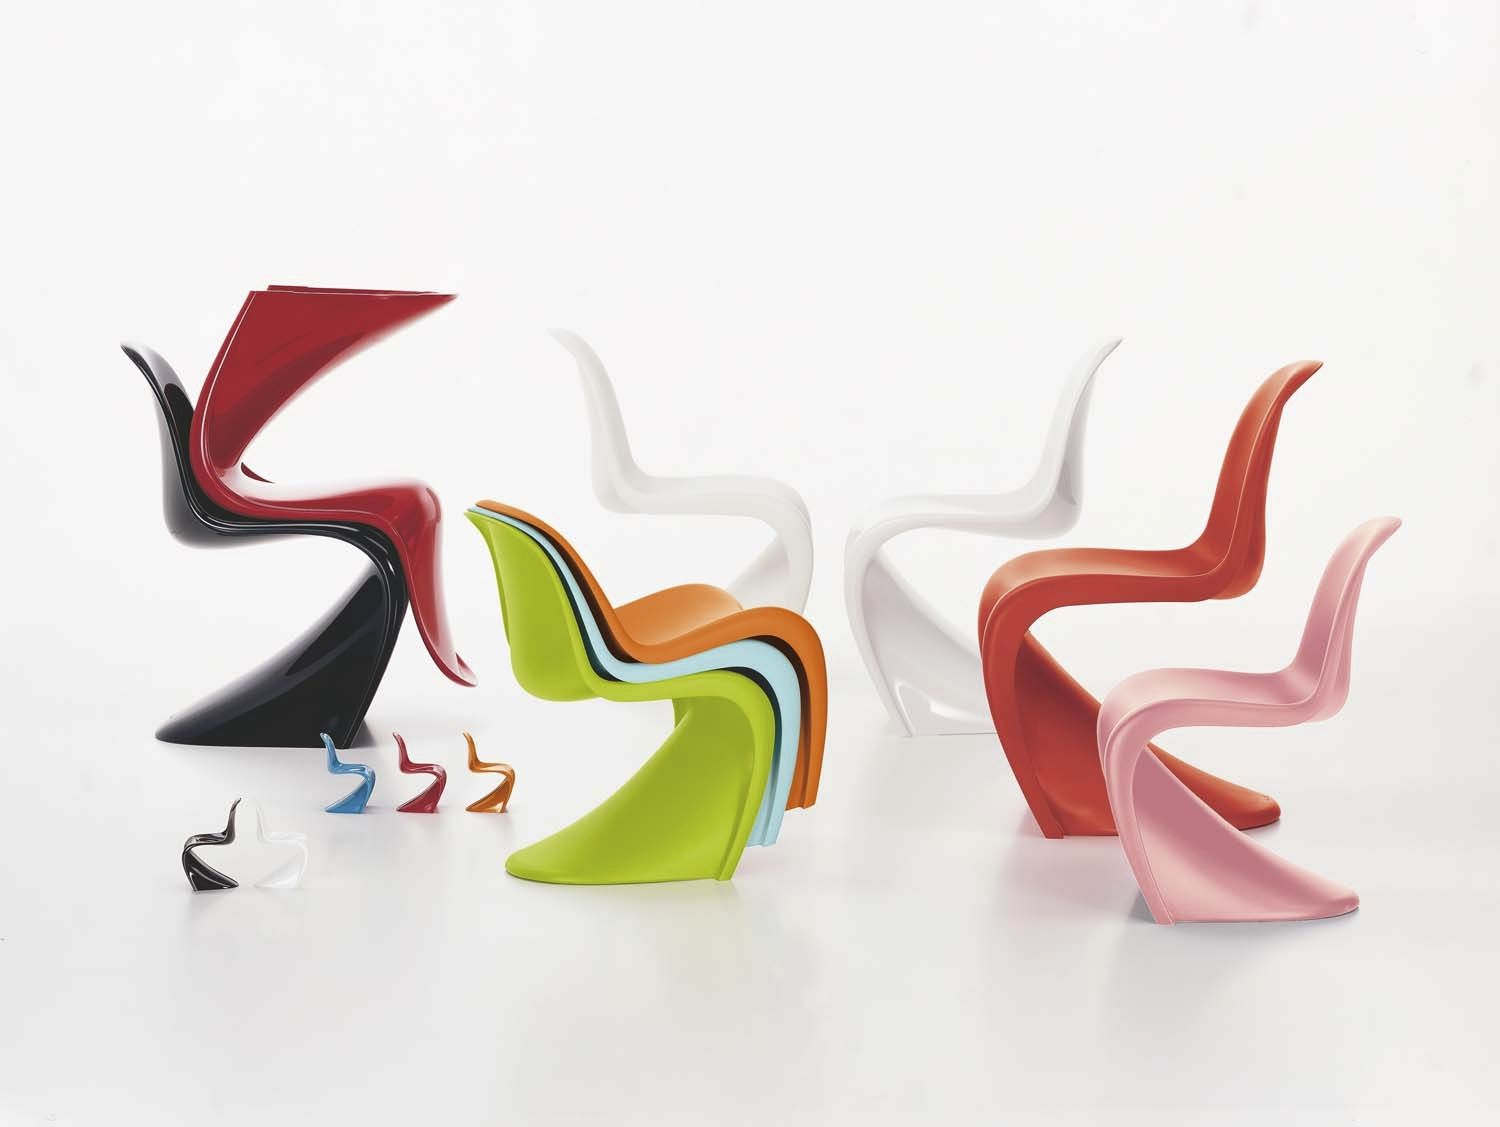 Chaise Panton Verner Panton creativity of ideas: panton chair